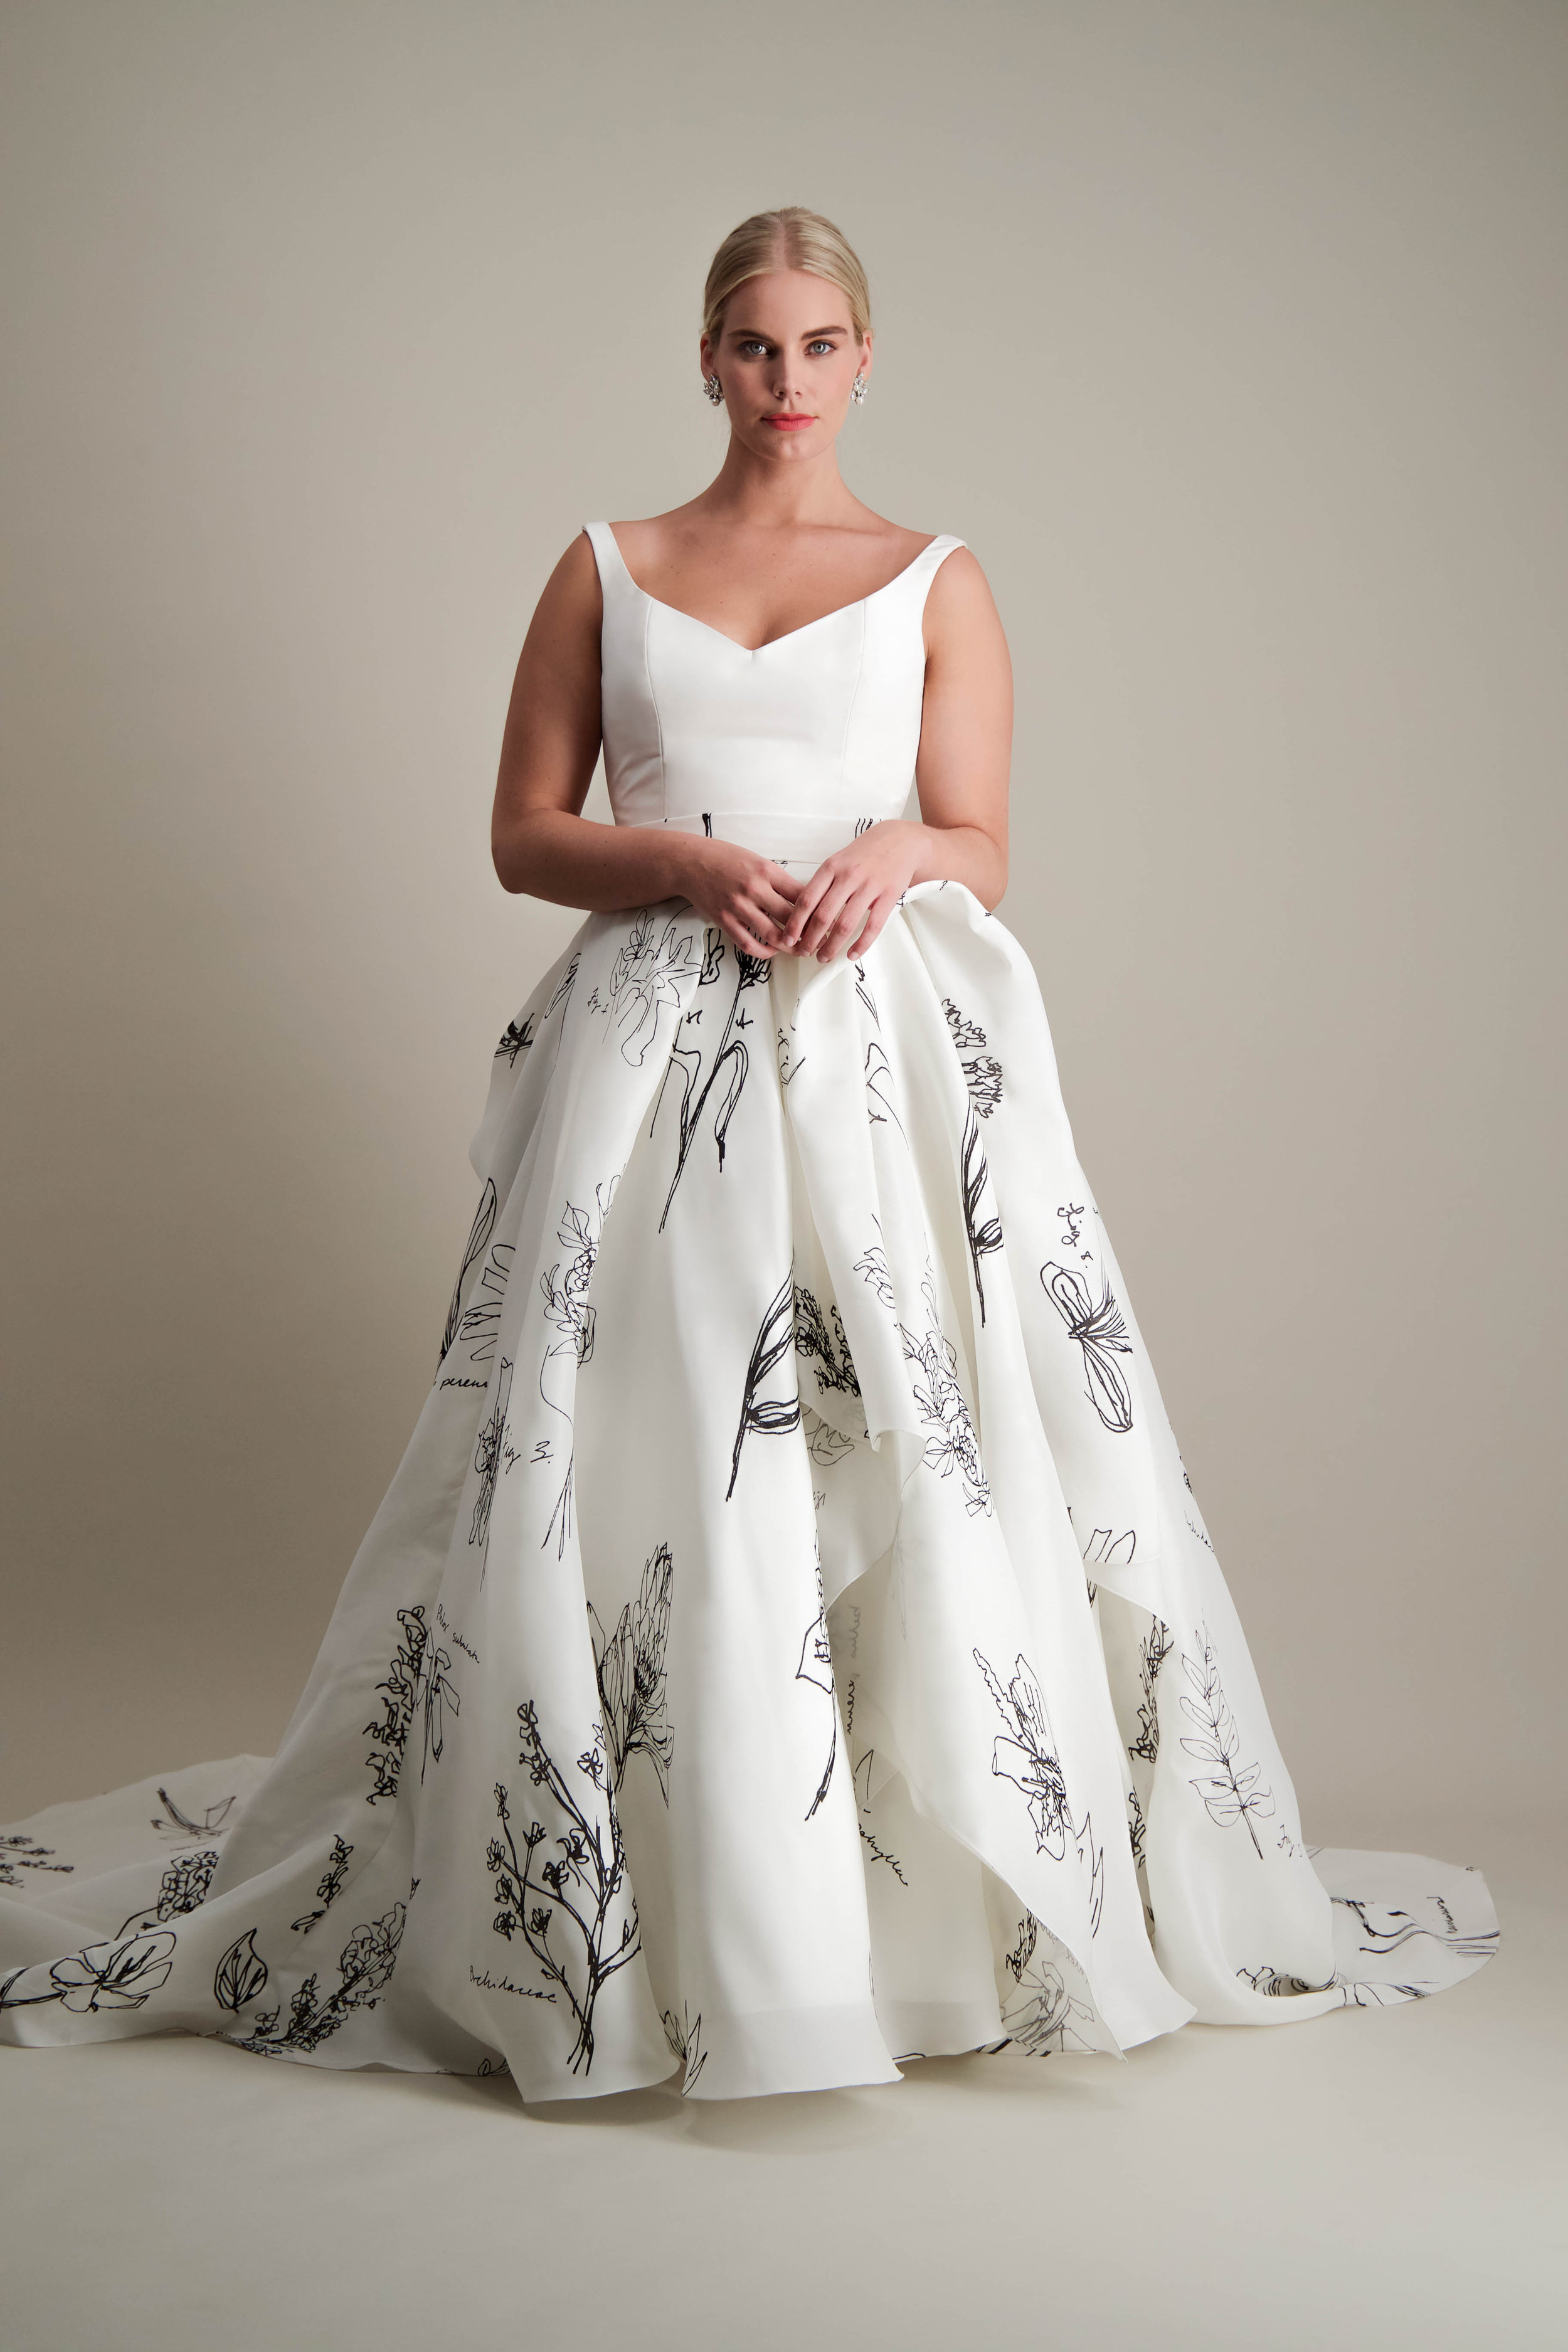 anthorium-skirt-ball-gown-printed-black-and-white-gown-1.jpg